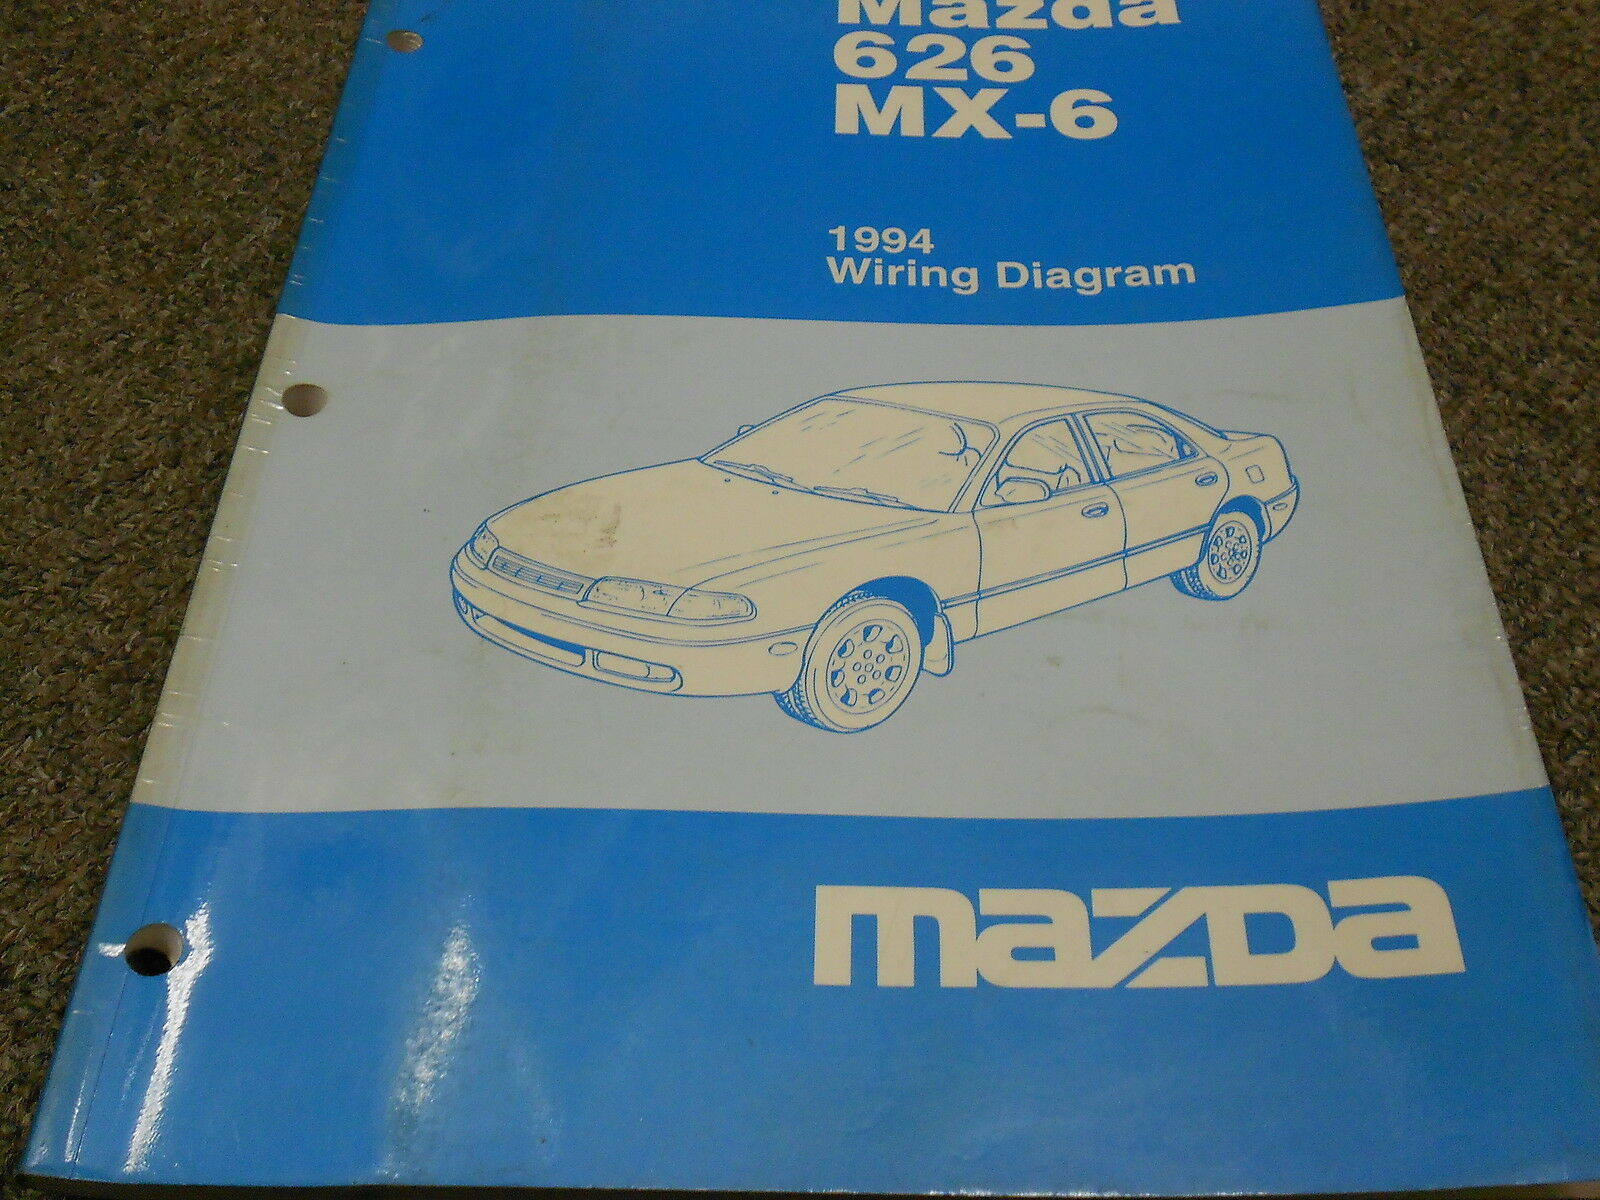 1994 Mazda 626 MX-6 MX6 Electrical Wiring Diagram Service Repair Shop Manual  1 of 6Only 3 available ...